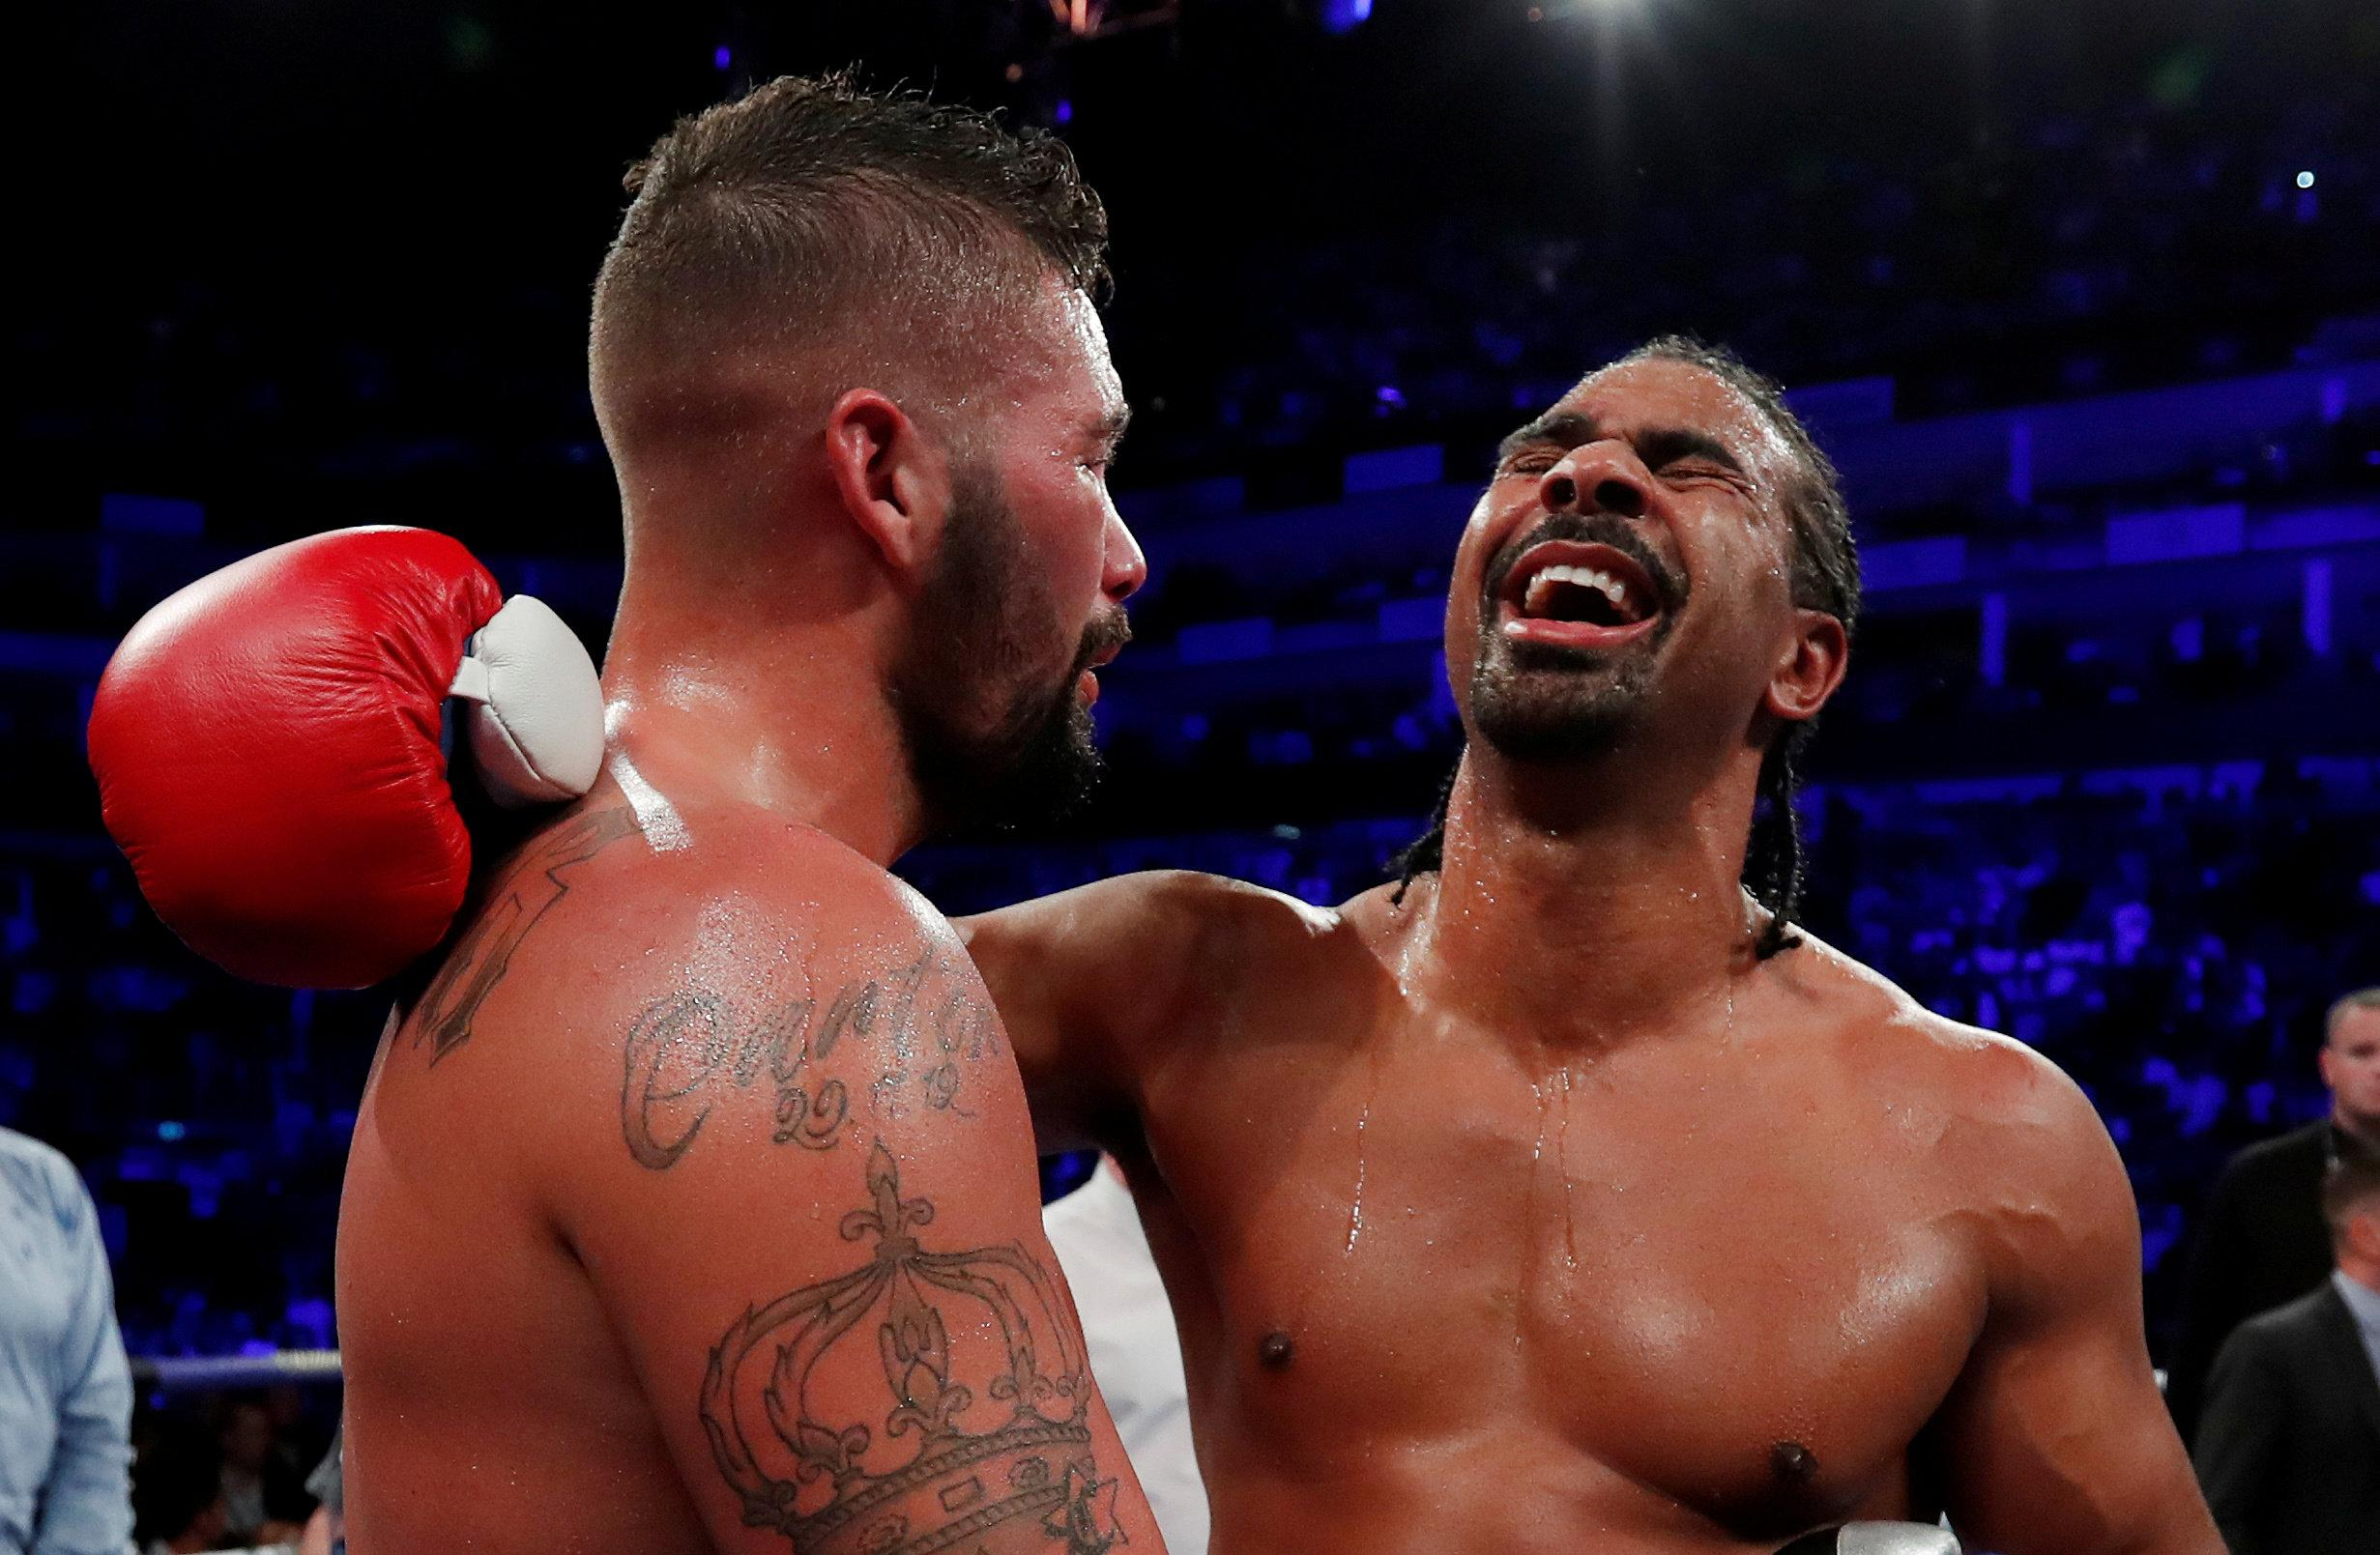 Haye and Bellew are now both retired from boxing